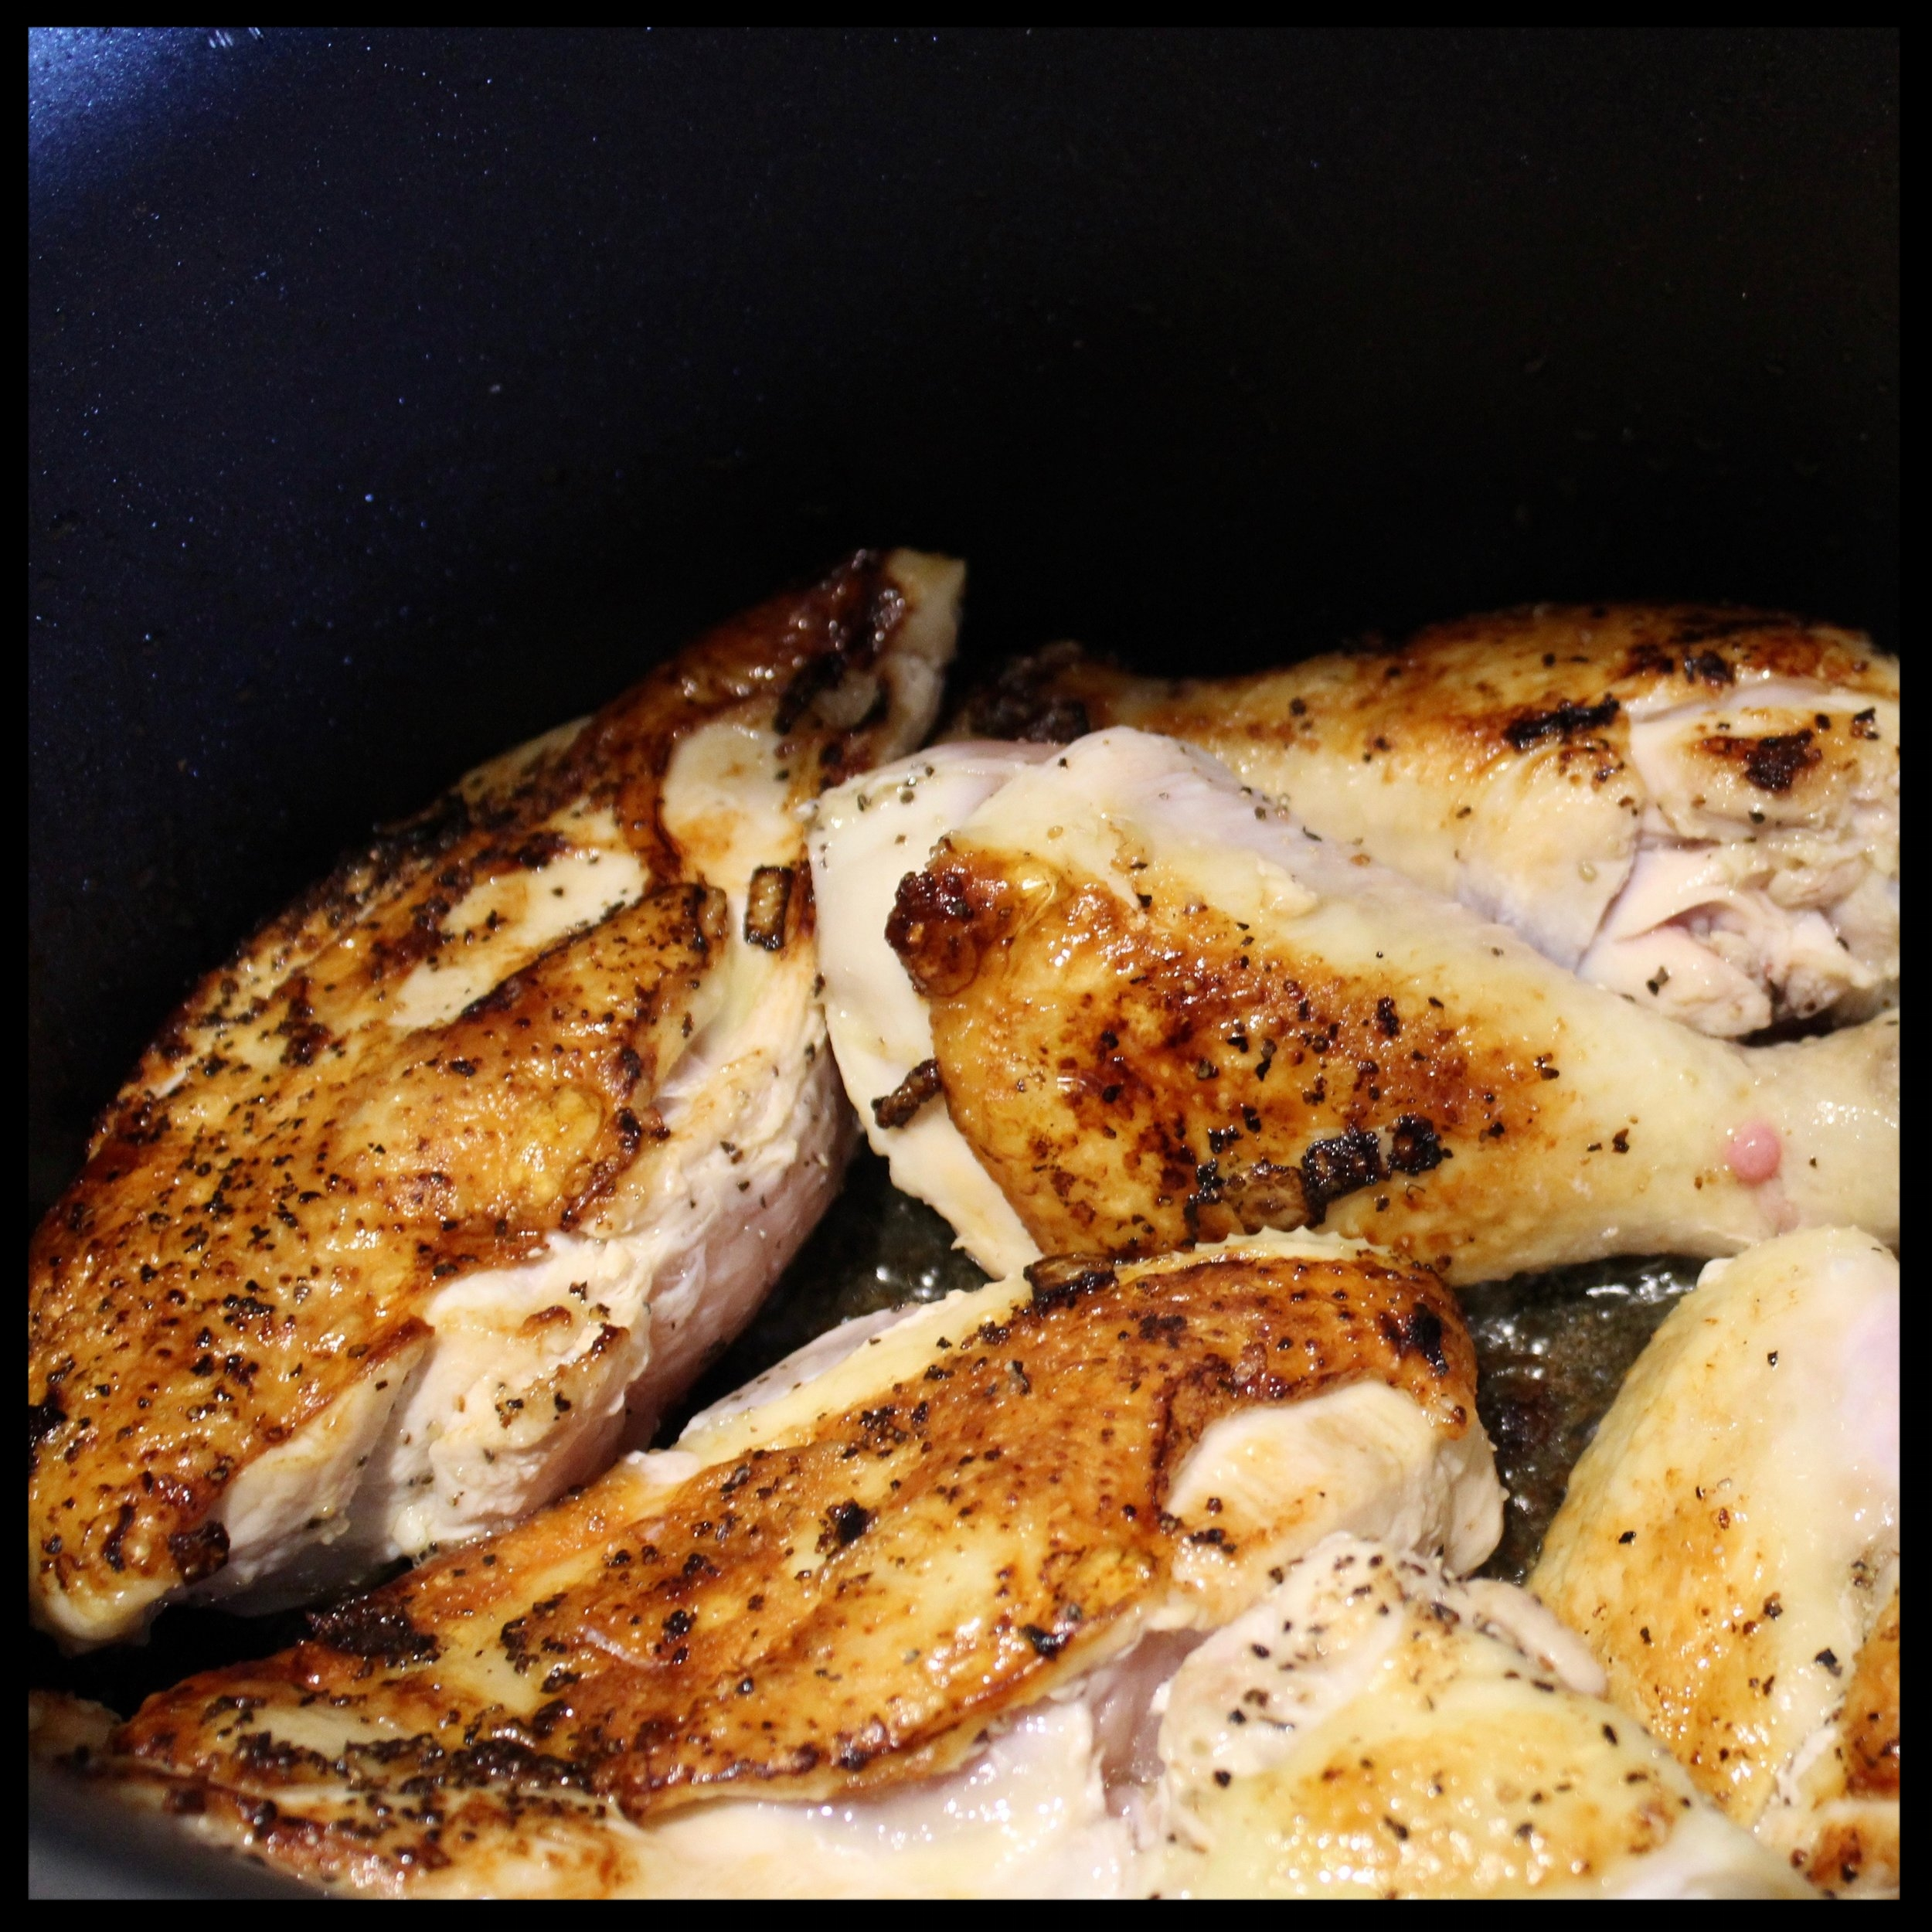 2. Remove the mushroom/onion mixture from the pan, add a little more oil, and sear the chicken parts on medium high (without moving) for 4-5 minutes.